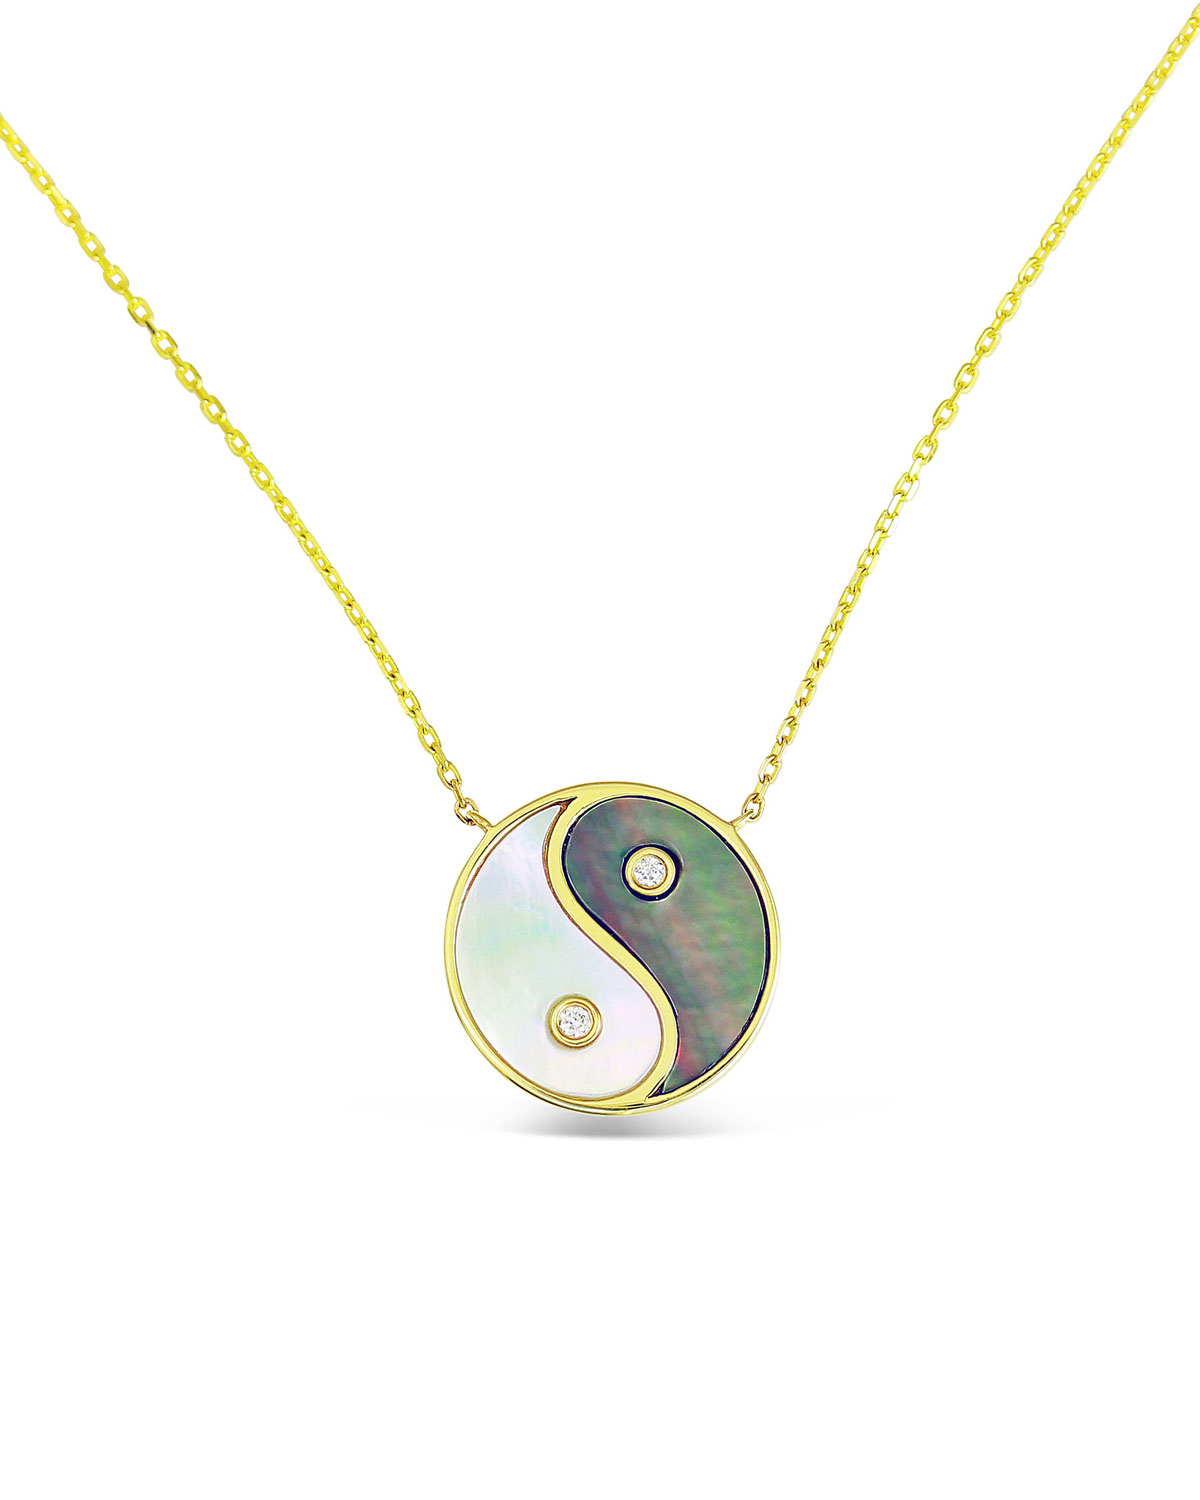 18k Gold & Mother-of-Pearl Yin Yang Pendant Necklace